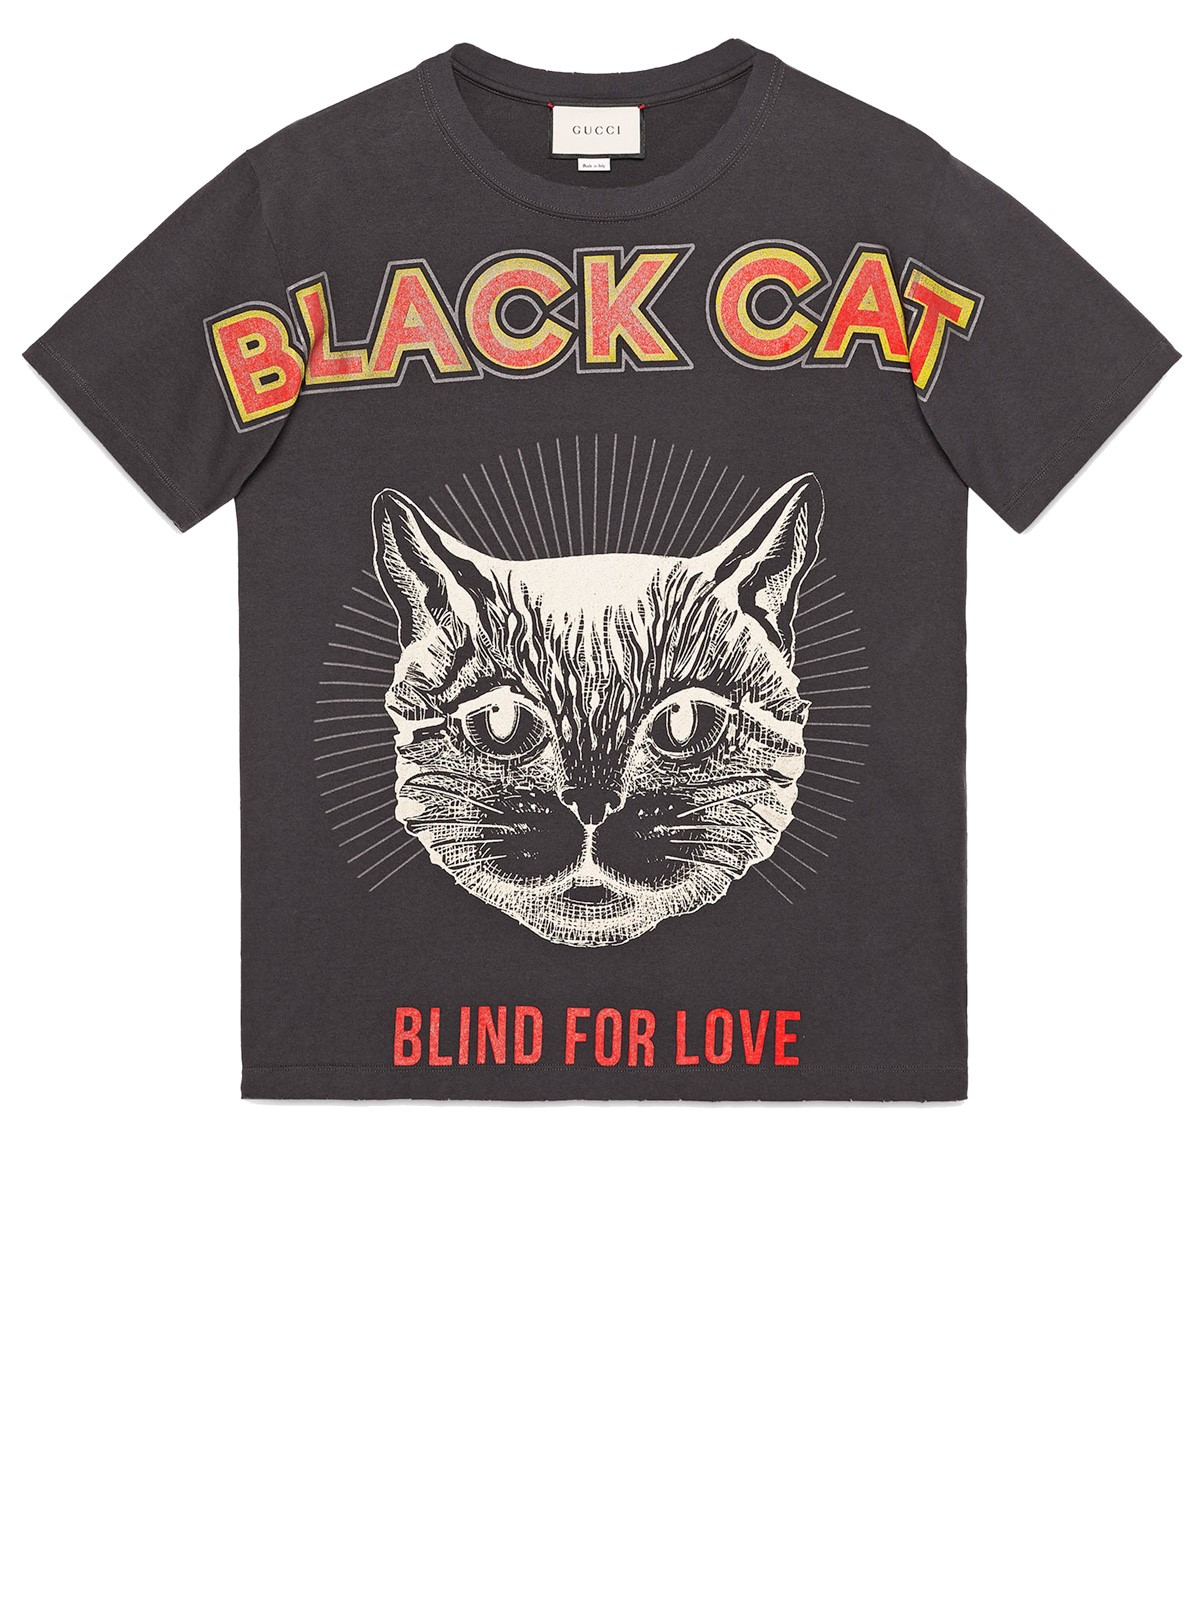 652fd4449f4c gucci BLACK CAT PRINTED T-SHIRT available on montiboutique.com - 21508